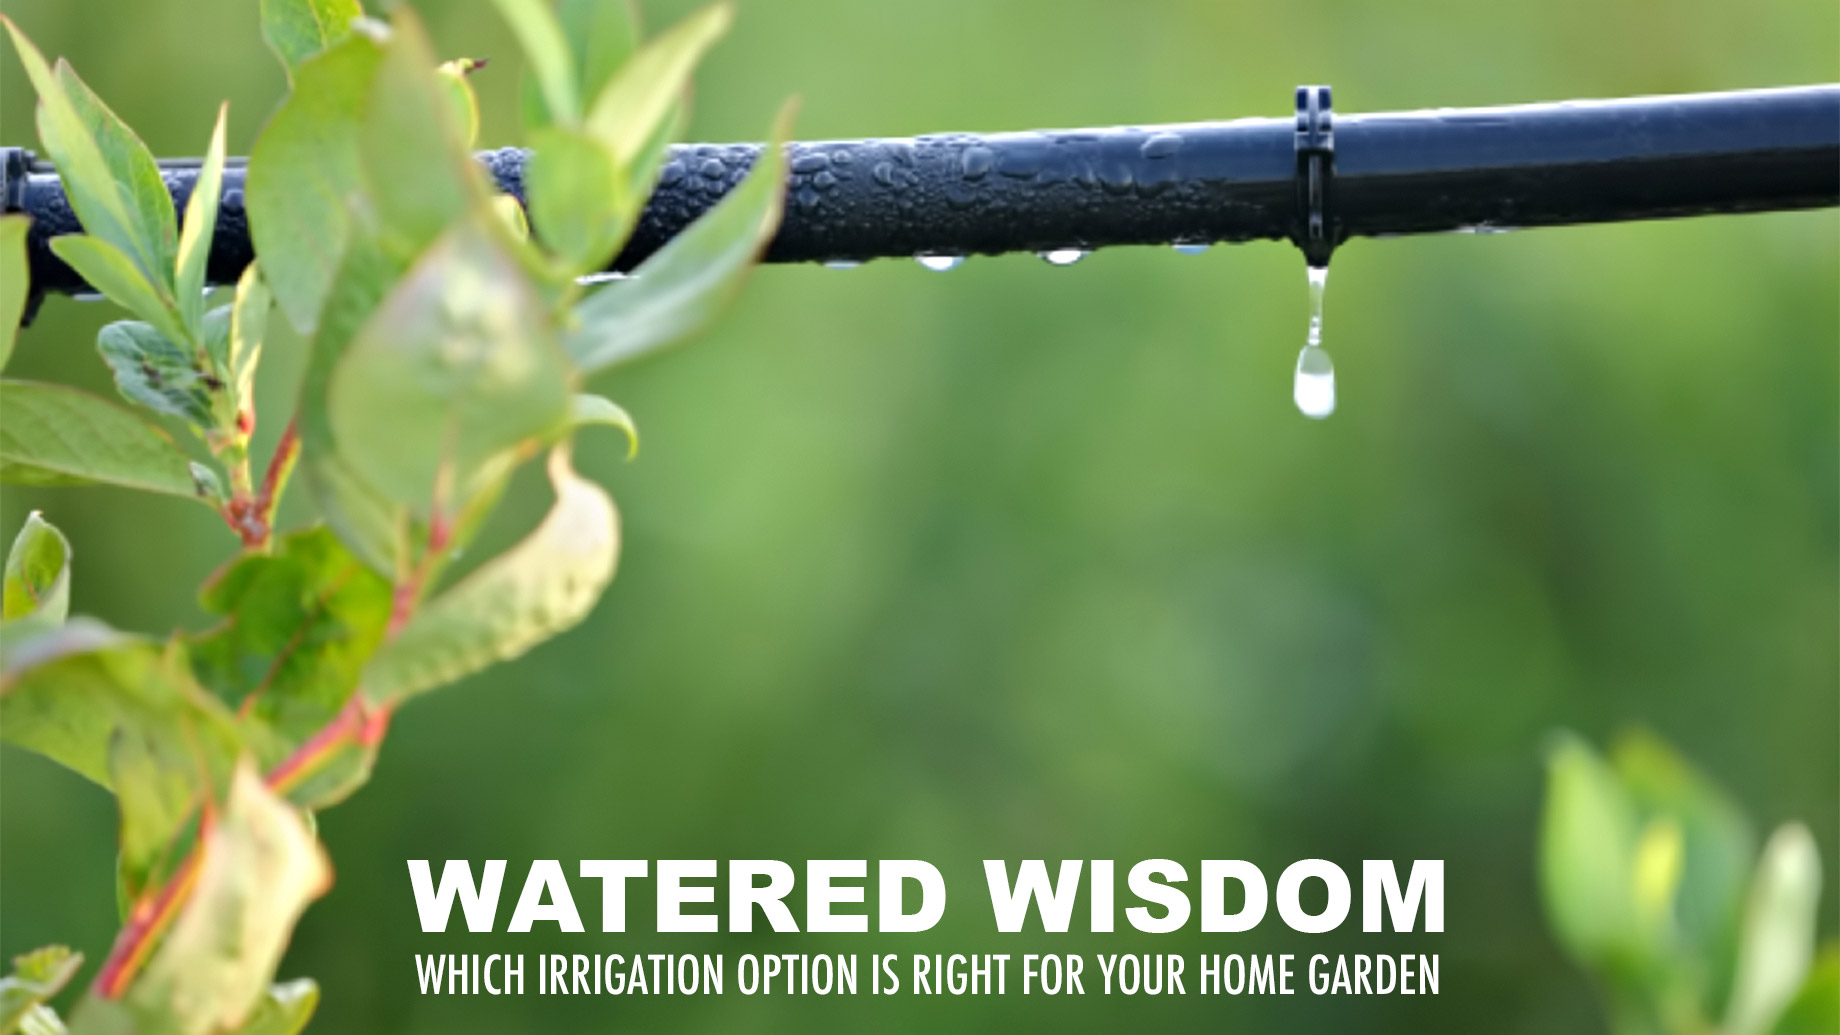 Watered Wisdom - Which Irrigation Option is Right For Your Home Garden?